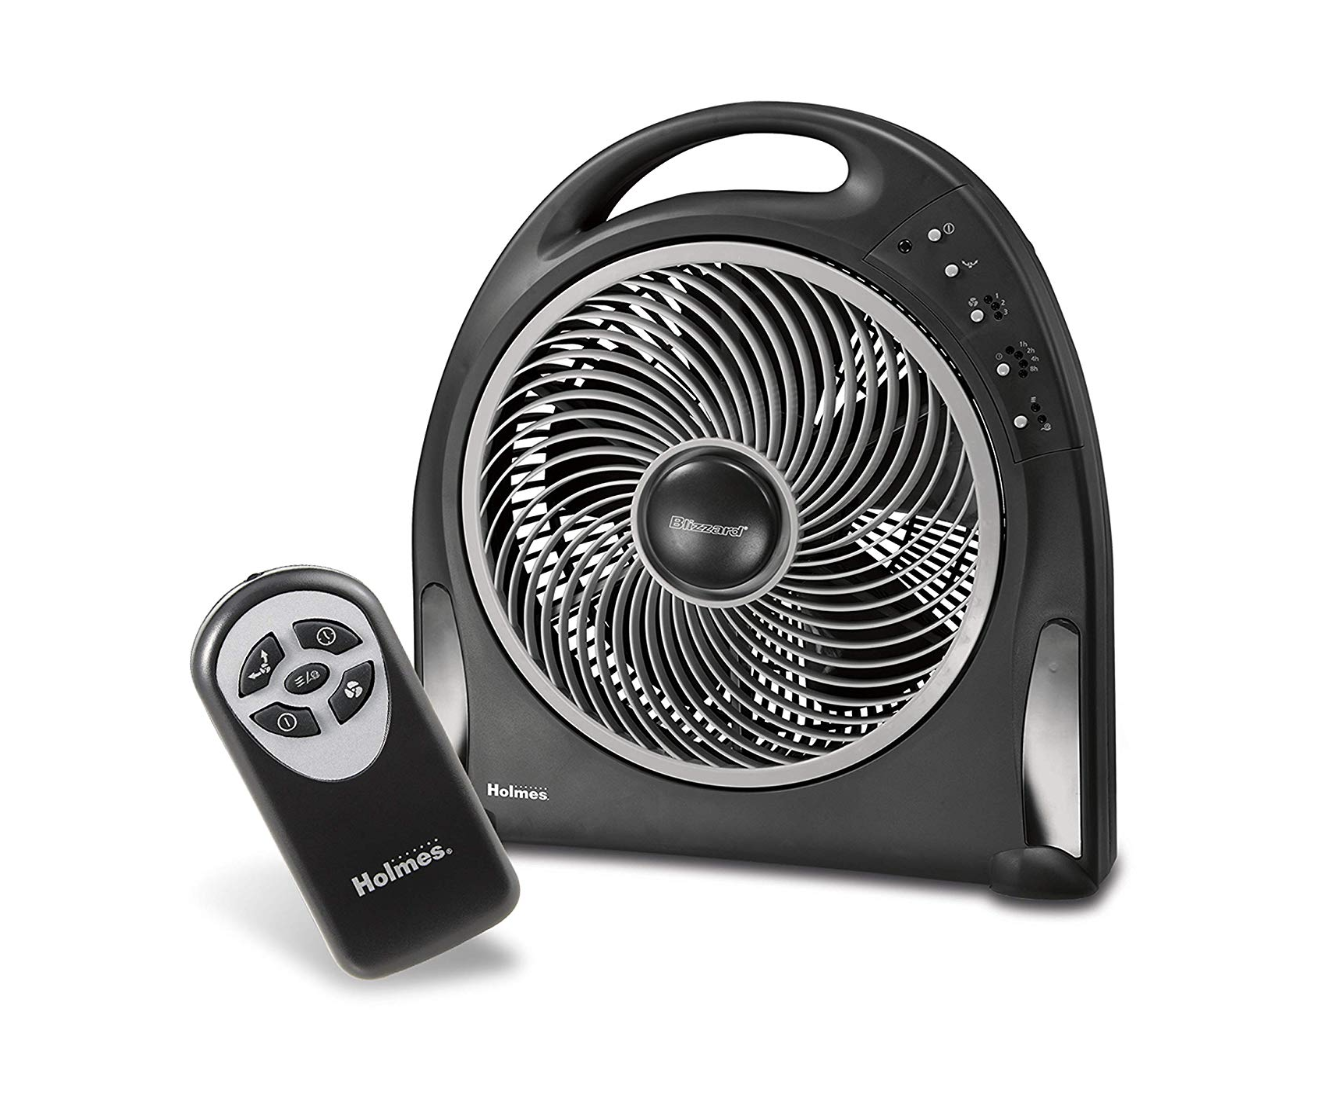 Holmes 12-Inch Fan | Blizzard Rotating Fan with Remote Control